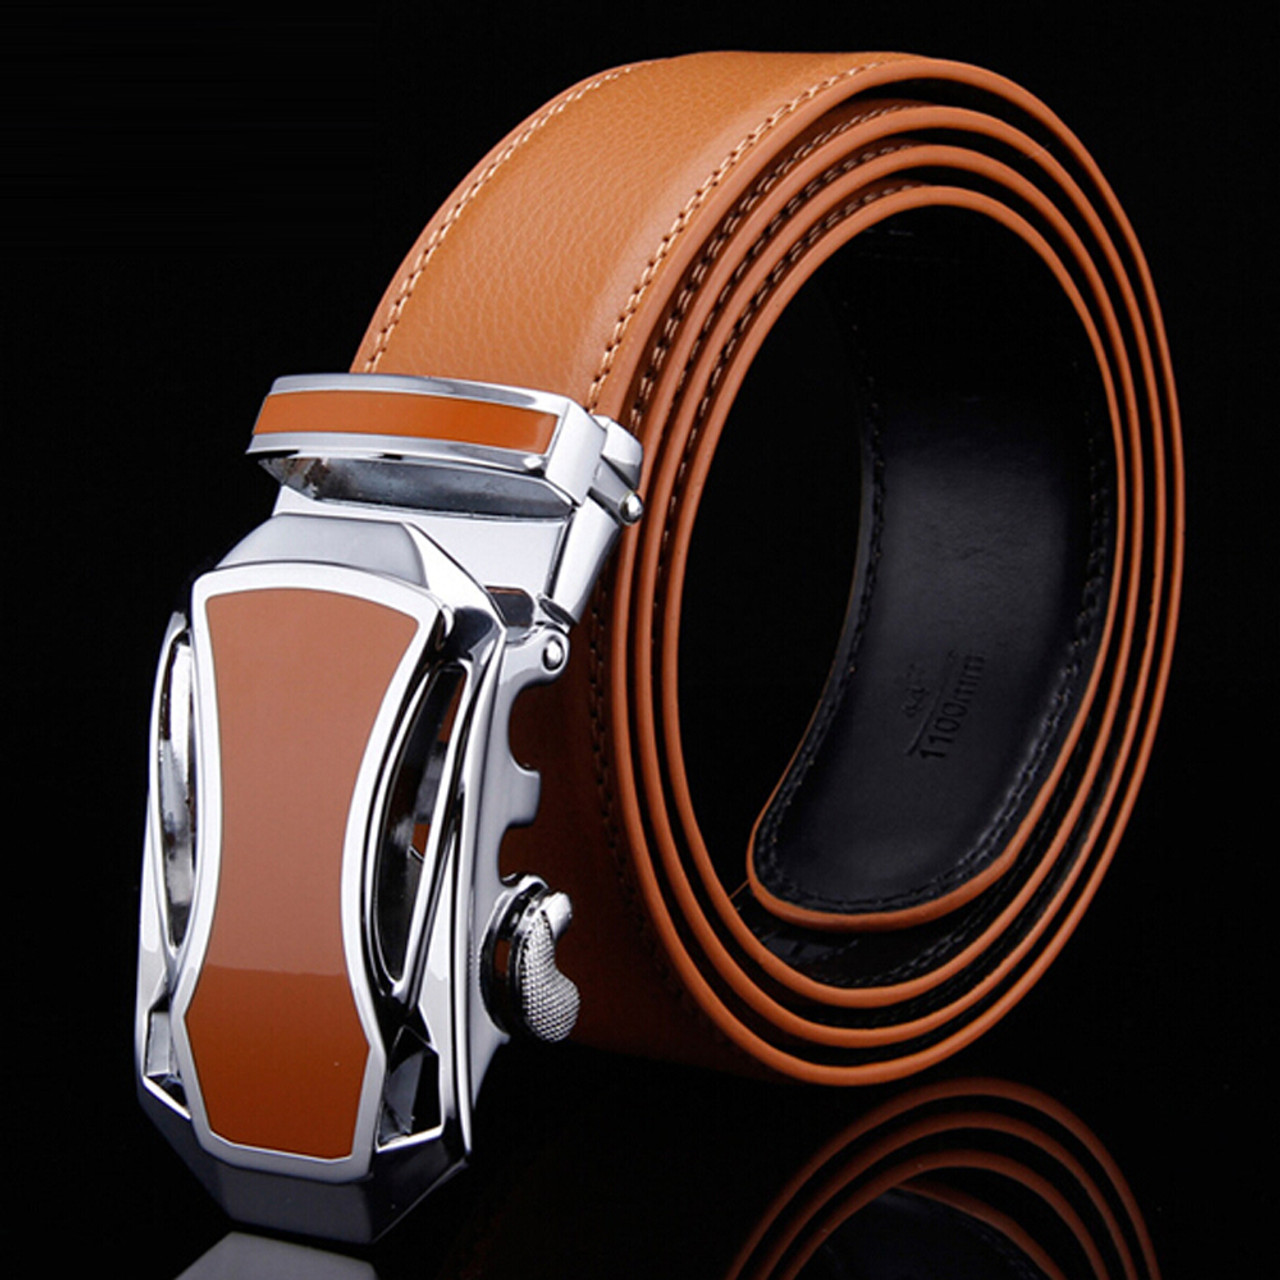 a0acd15a8d4 New Arrival Fashion Men Belt Wholesale Price Male Brand Luxury Belts Straps  Accessories Waistband with Jaguar ...